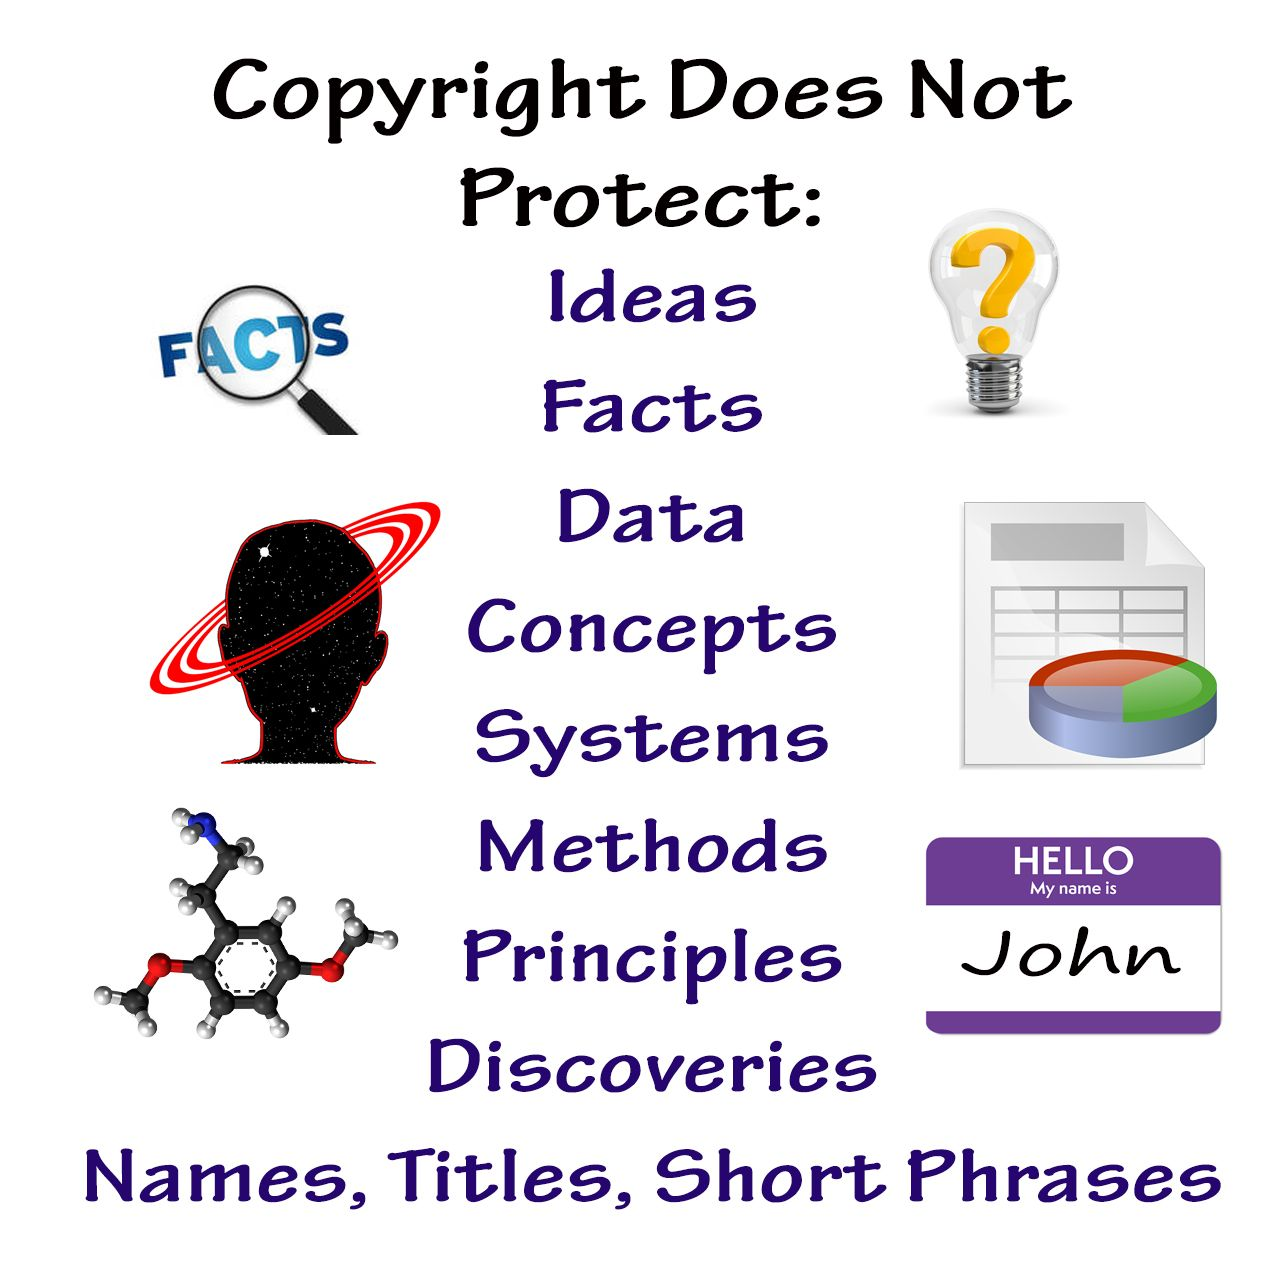 Do Not Call List 2020.Copyright Does Not Protect Malke Your Company Logo